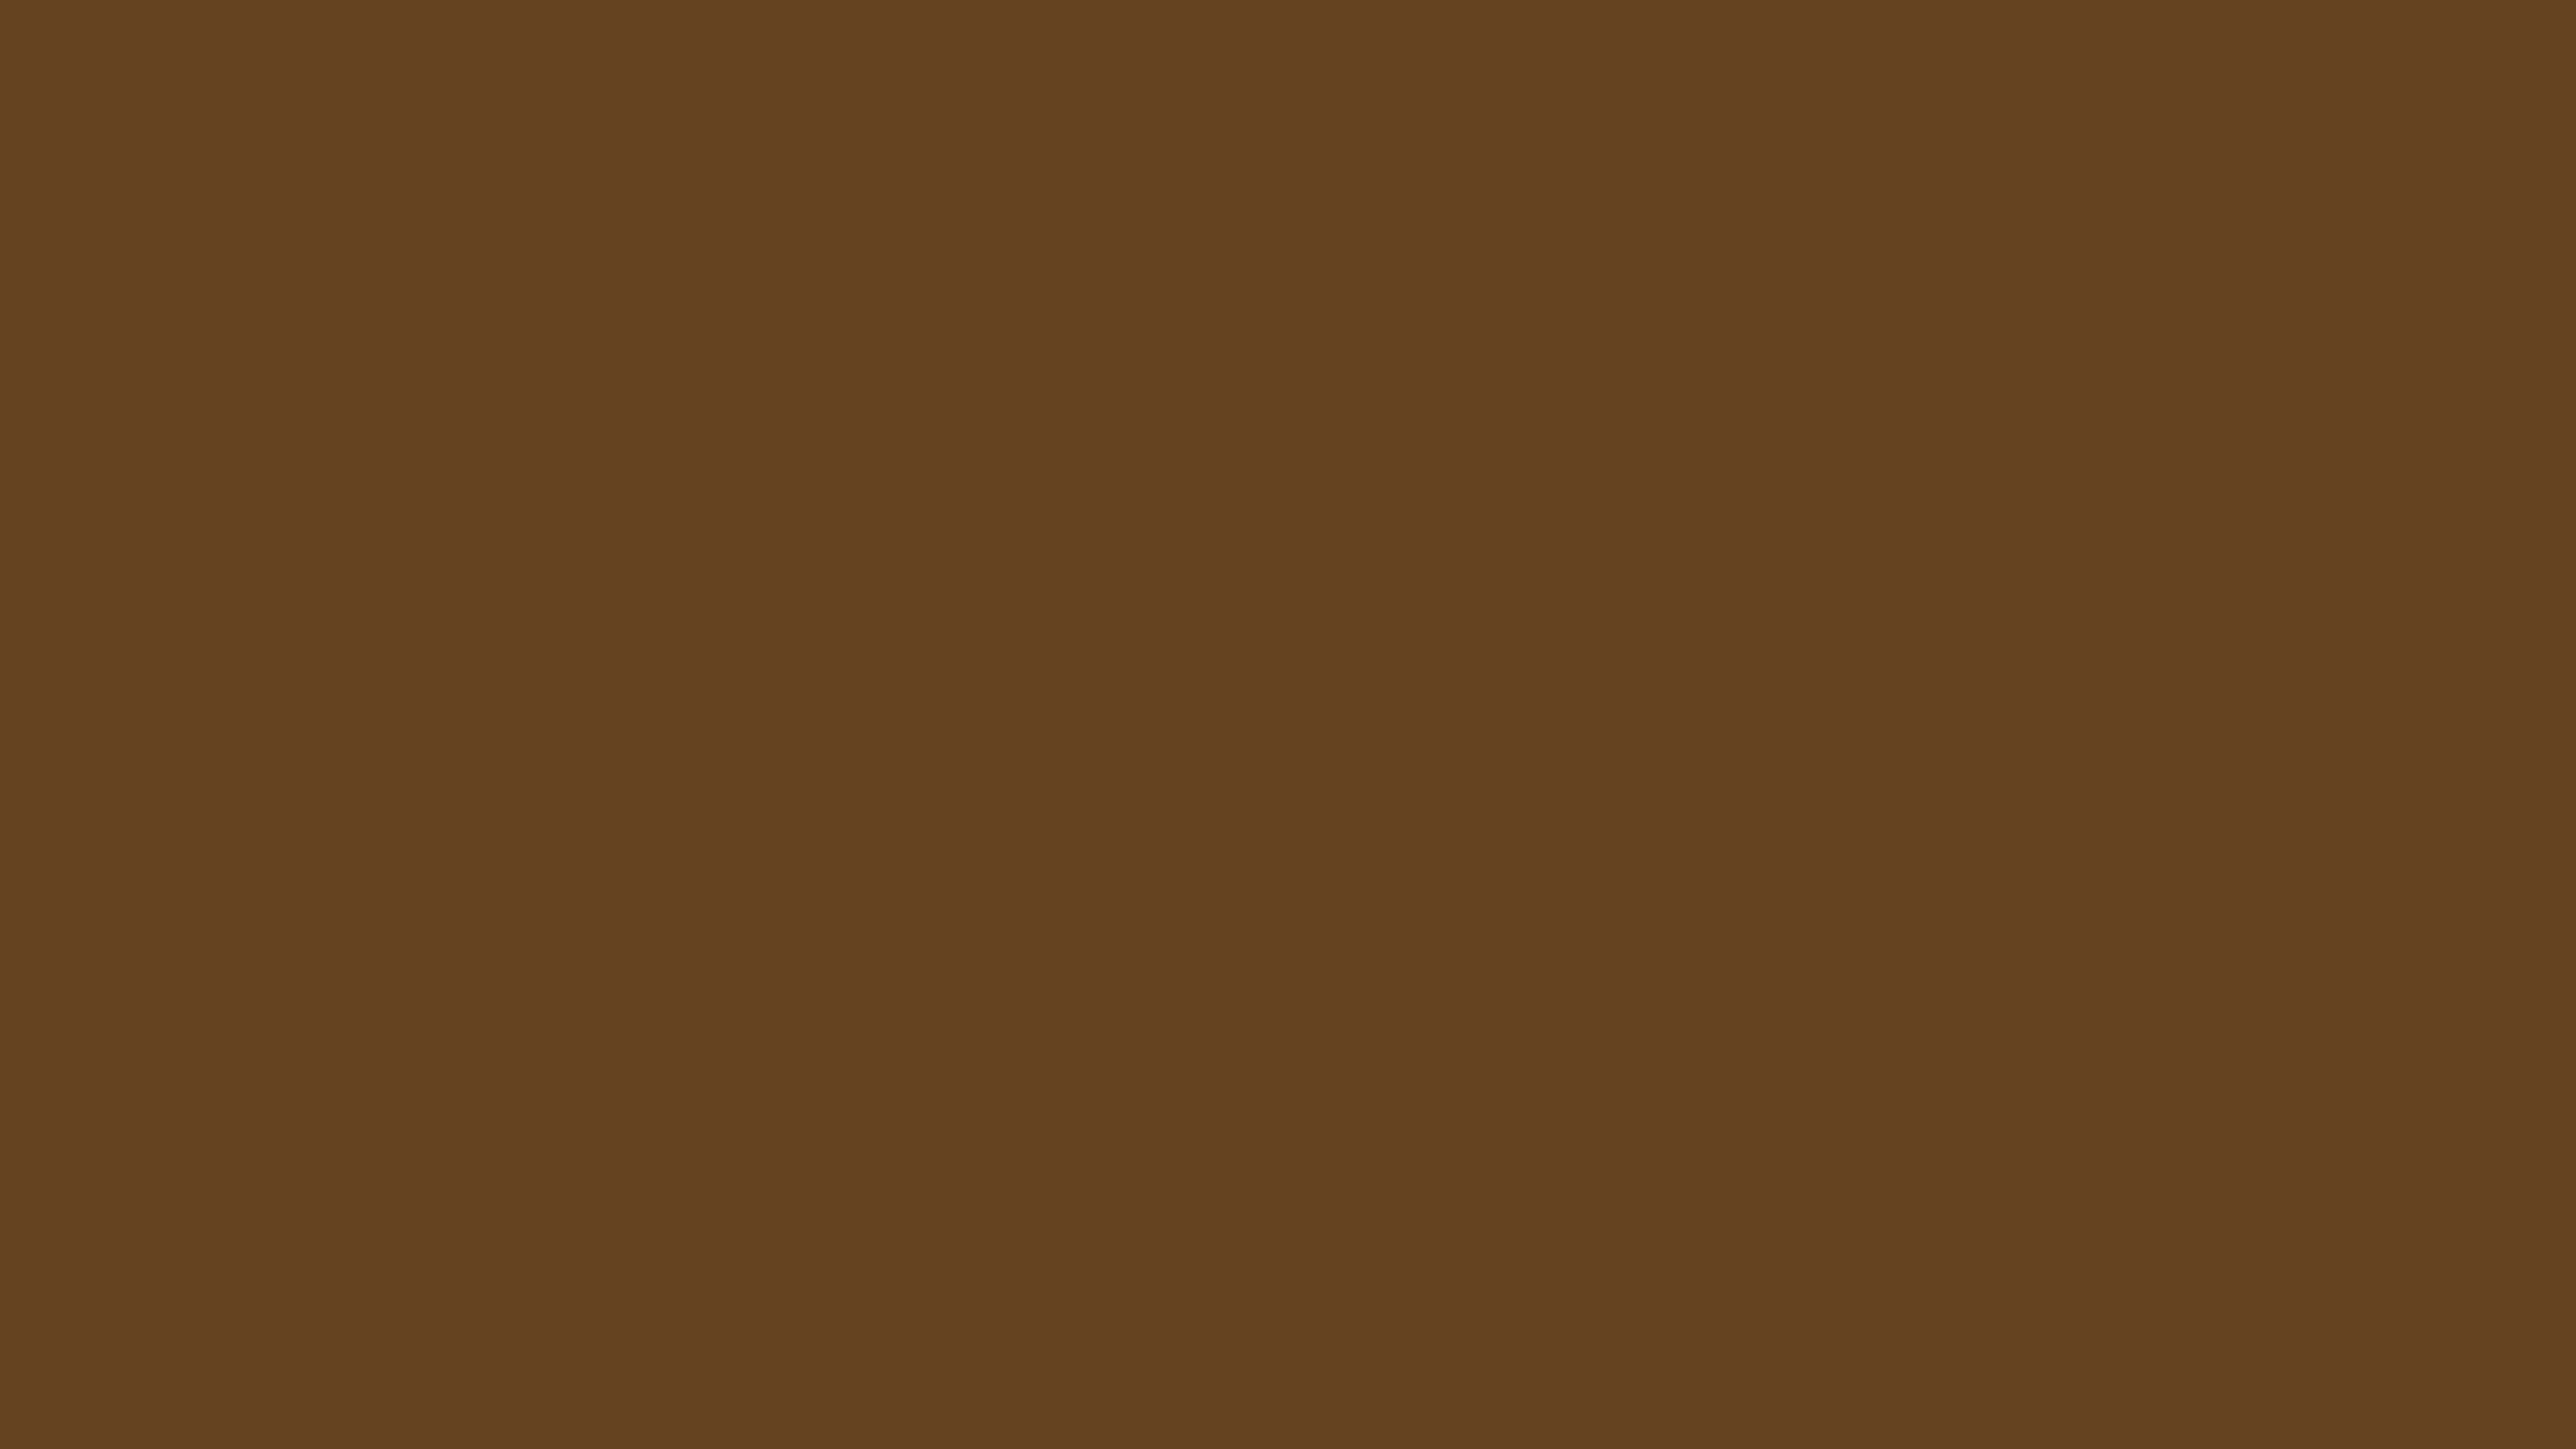 3840x2160 Otter Brown Solid Color Background